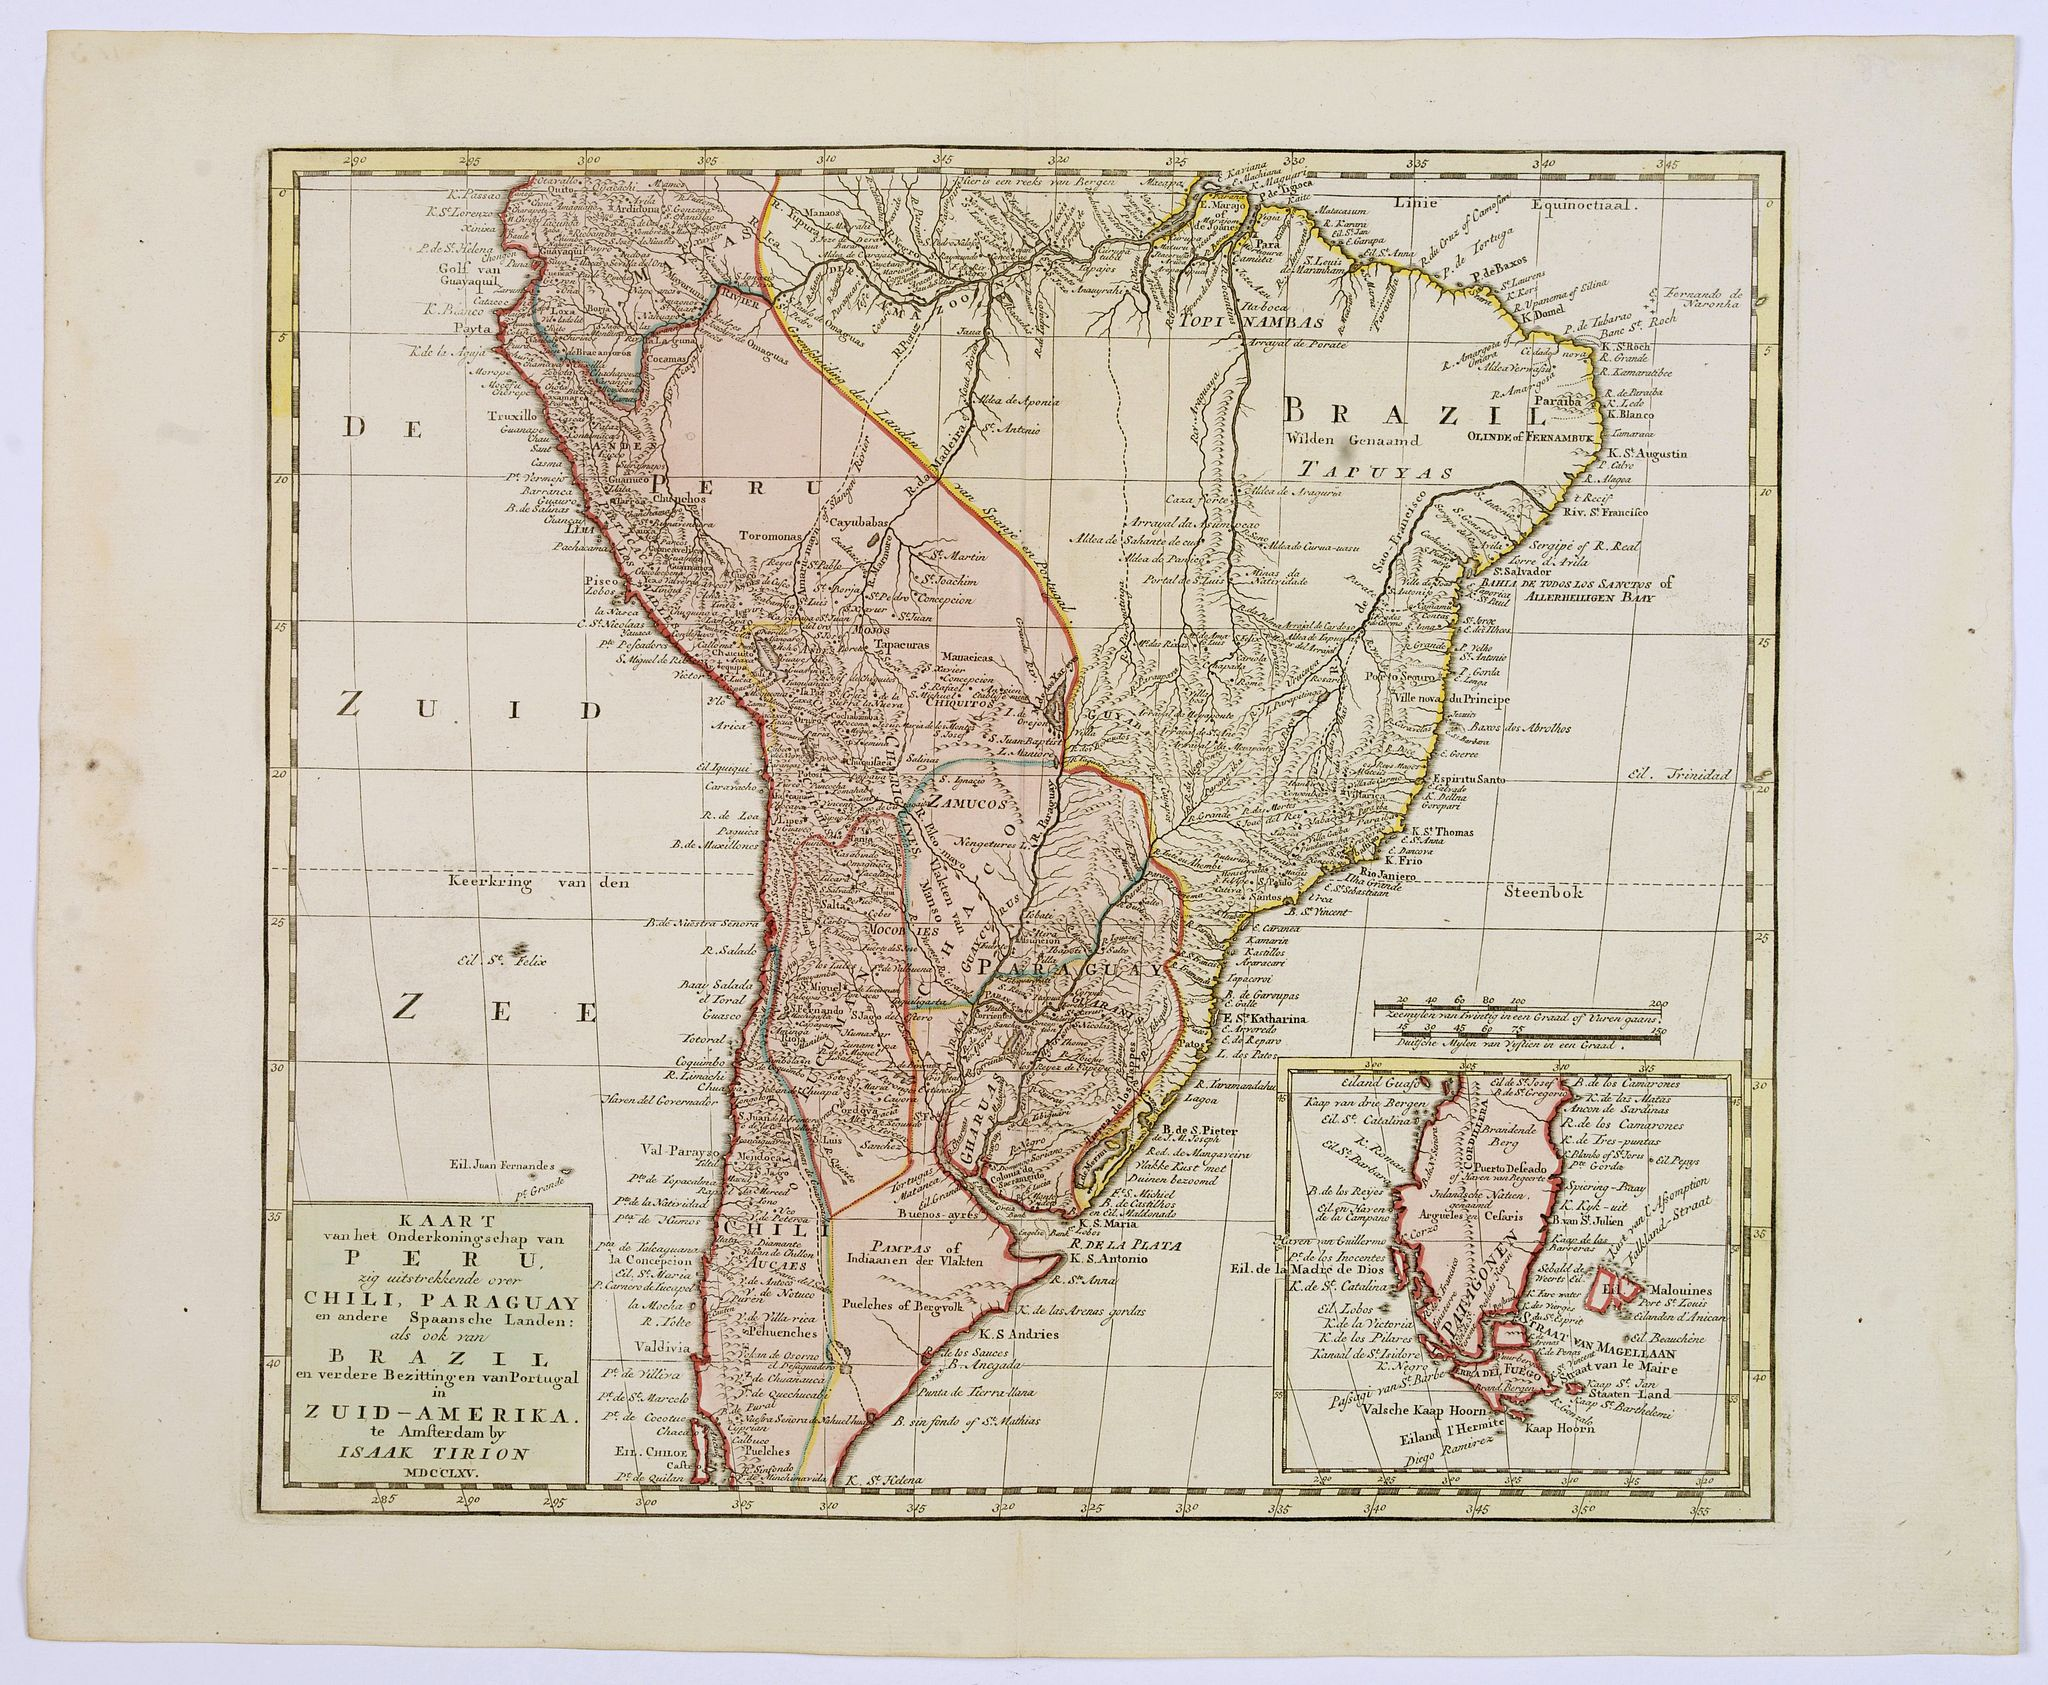 TIRION, I., Kaart.. Peru,.. Chili, Paraguay..Brazil.. in Zuid-Amerika., antique map, old maps